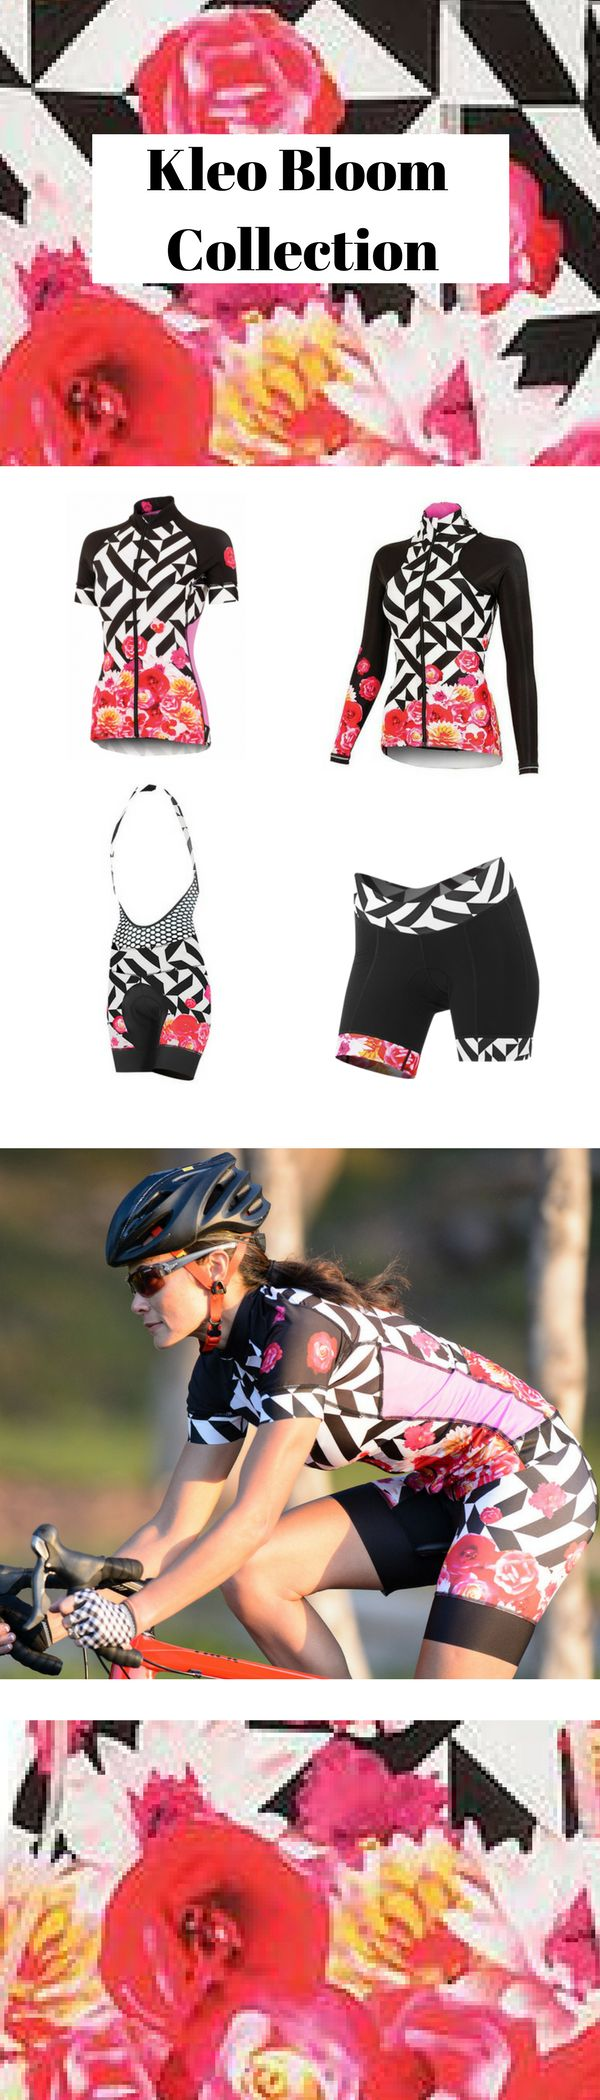 Women's cycling tops, bottoms, jerseys, bibs, accessories, and more available in Kleo Bloom, the perfect print for spring!